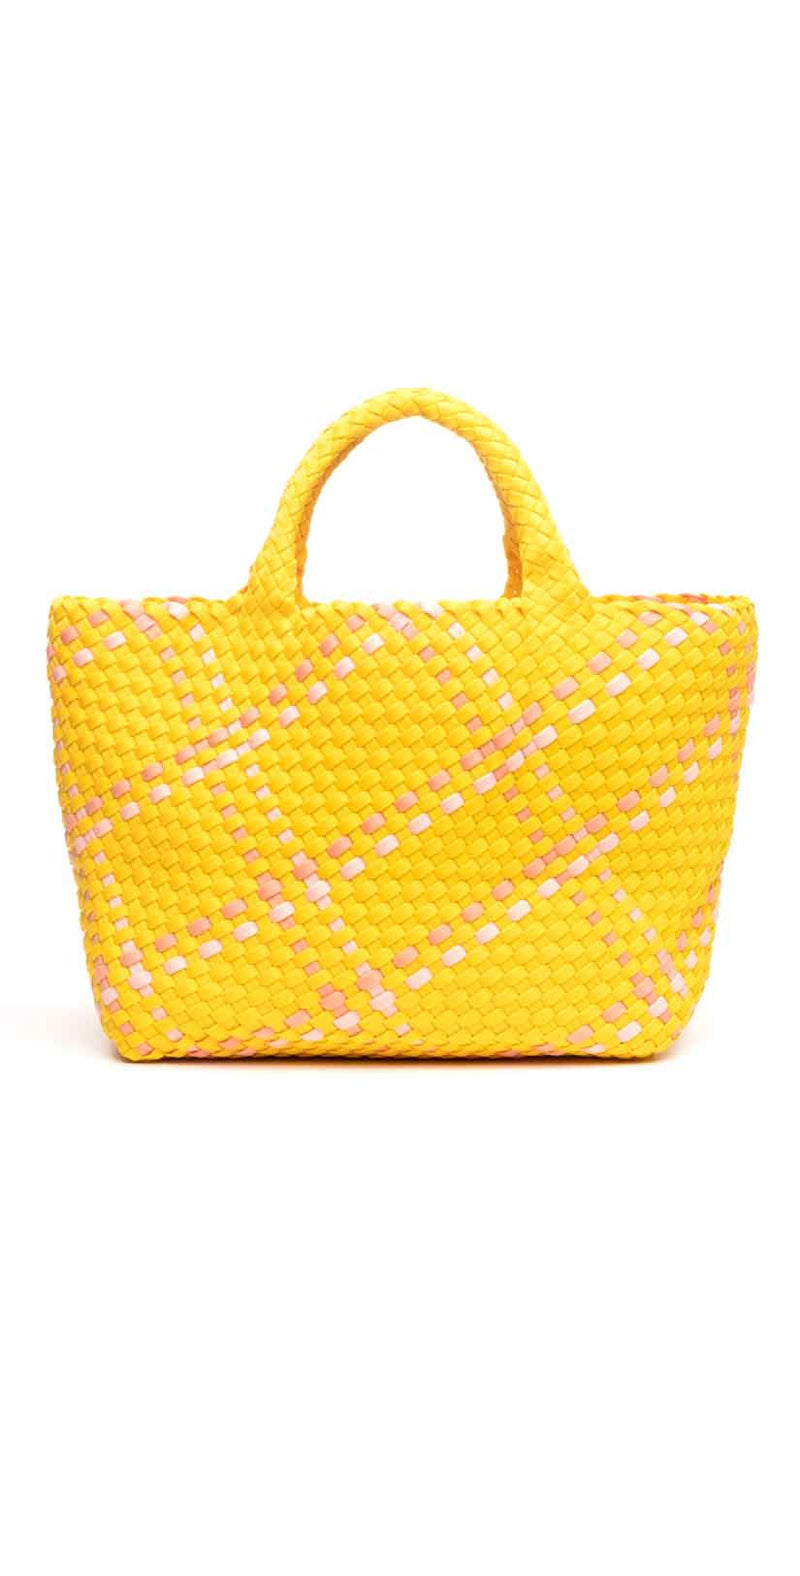 Deux Lux St. Barths Small Tote in Limoncello: